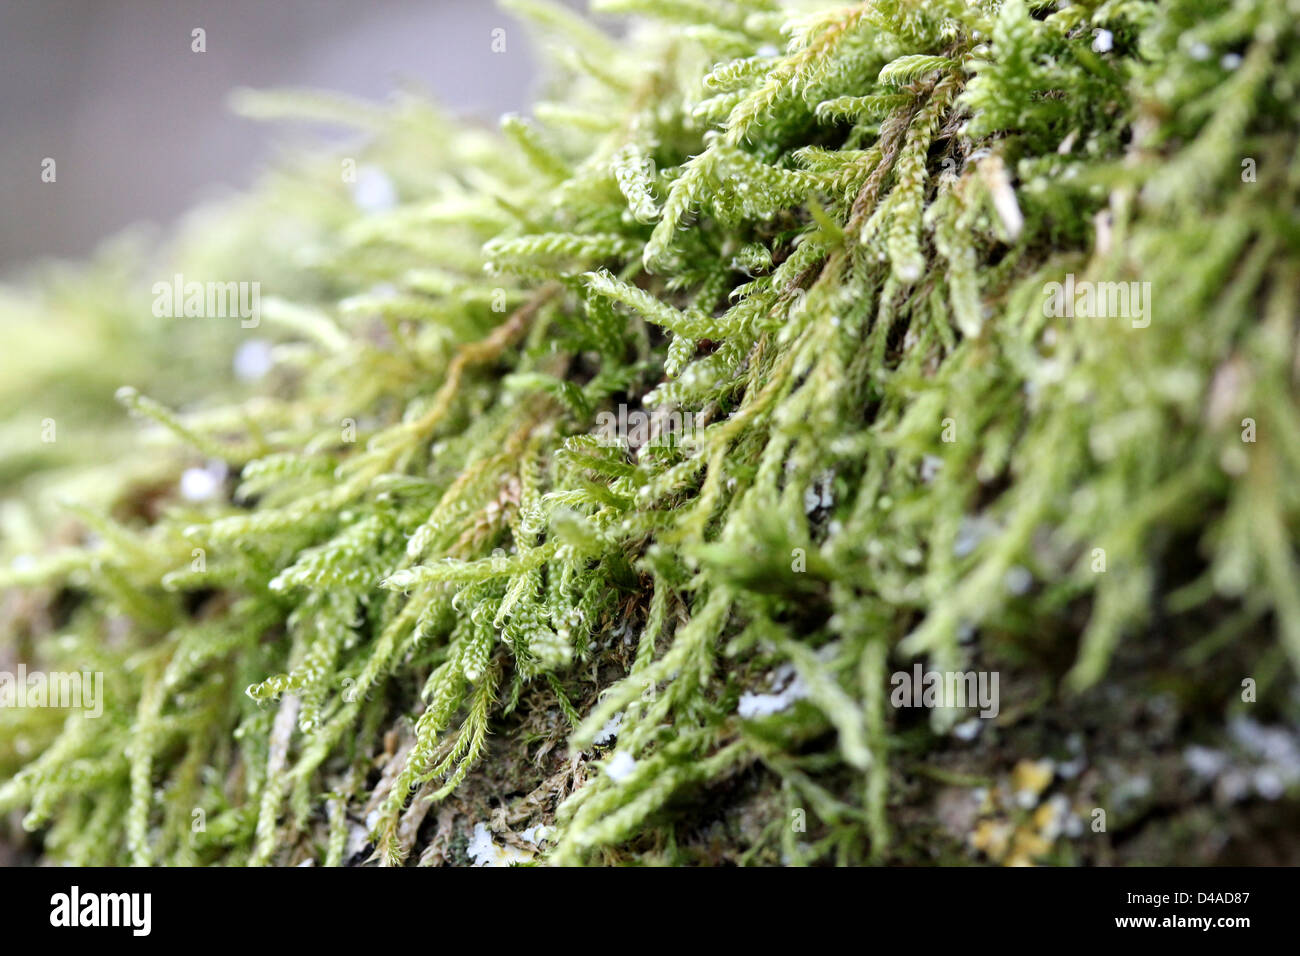 Green moss growing on tree branch Stock Photo